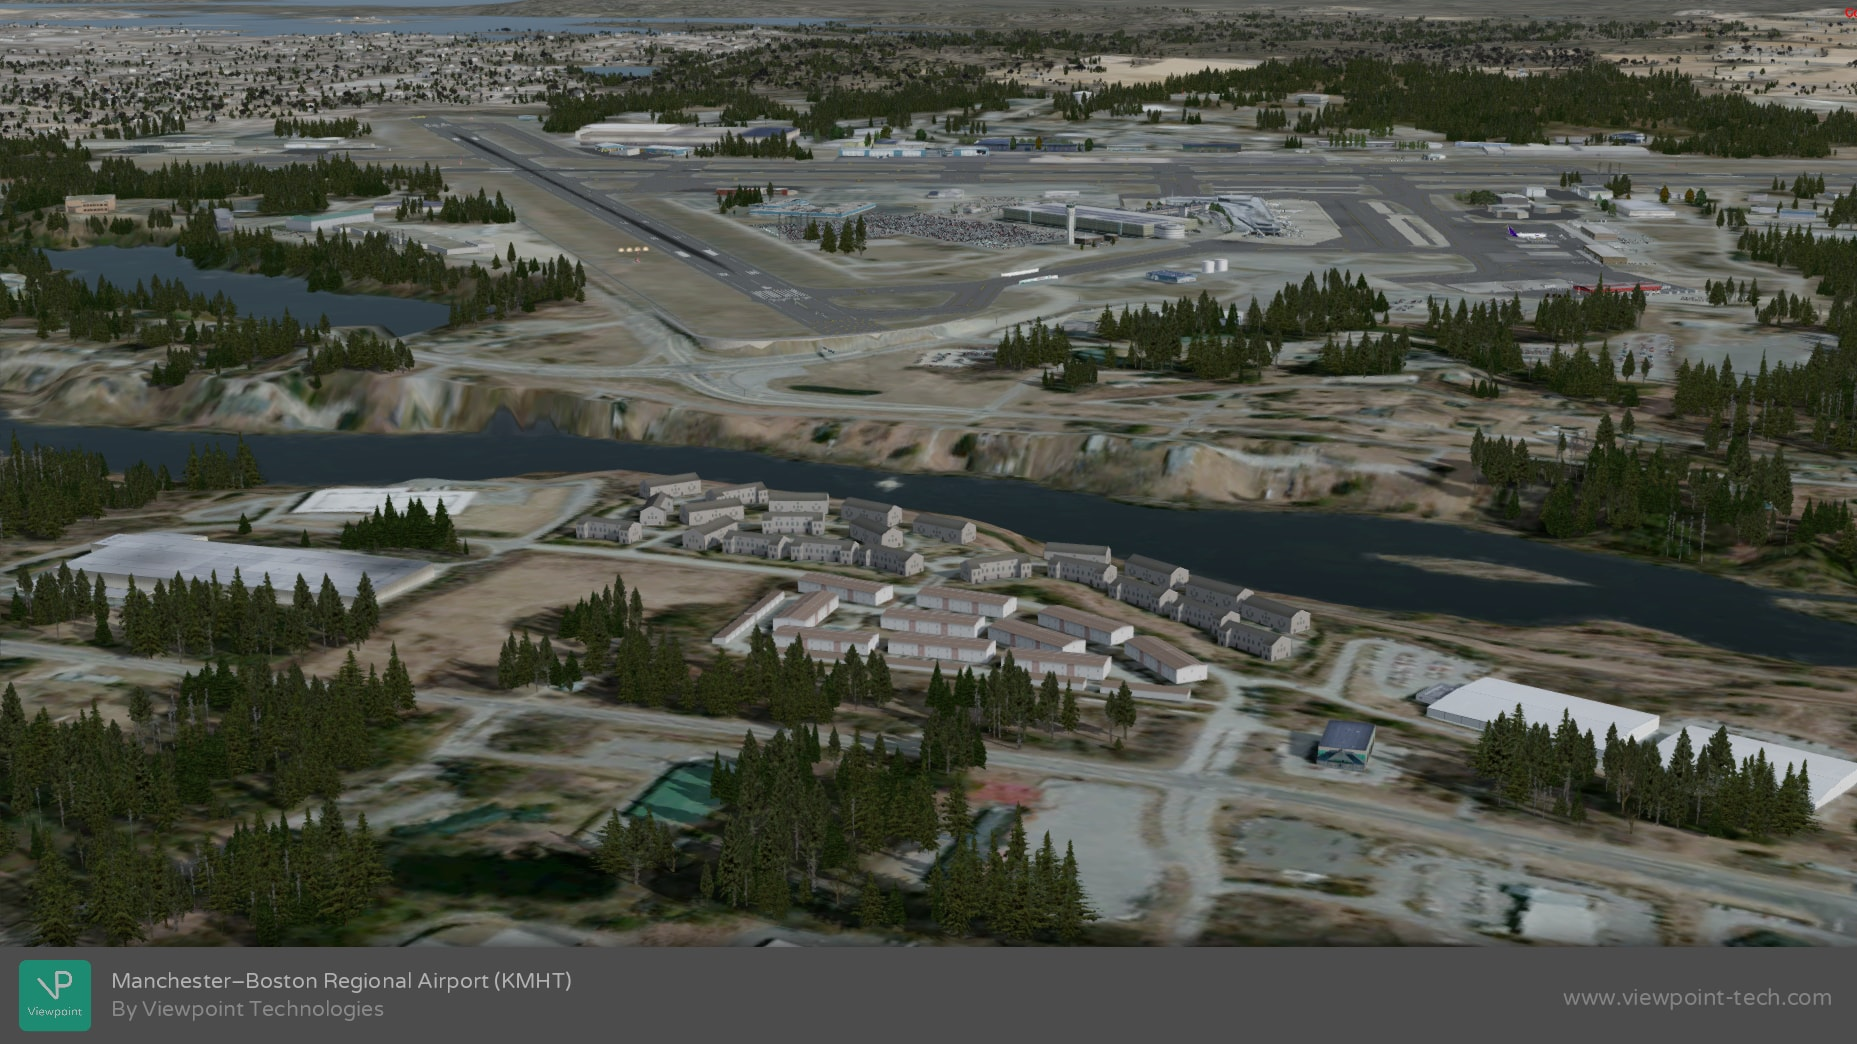 VIEWPOINT TECHNOLOGIES - MANCHESTER-BOSTON REGIONAL AIRPORT KMHT FSX P3D